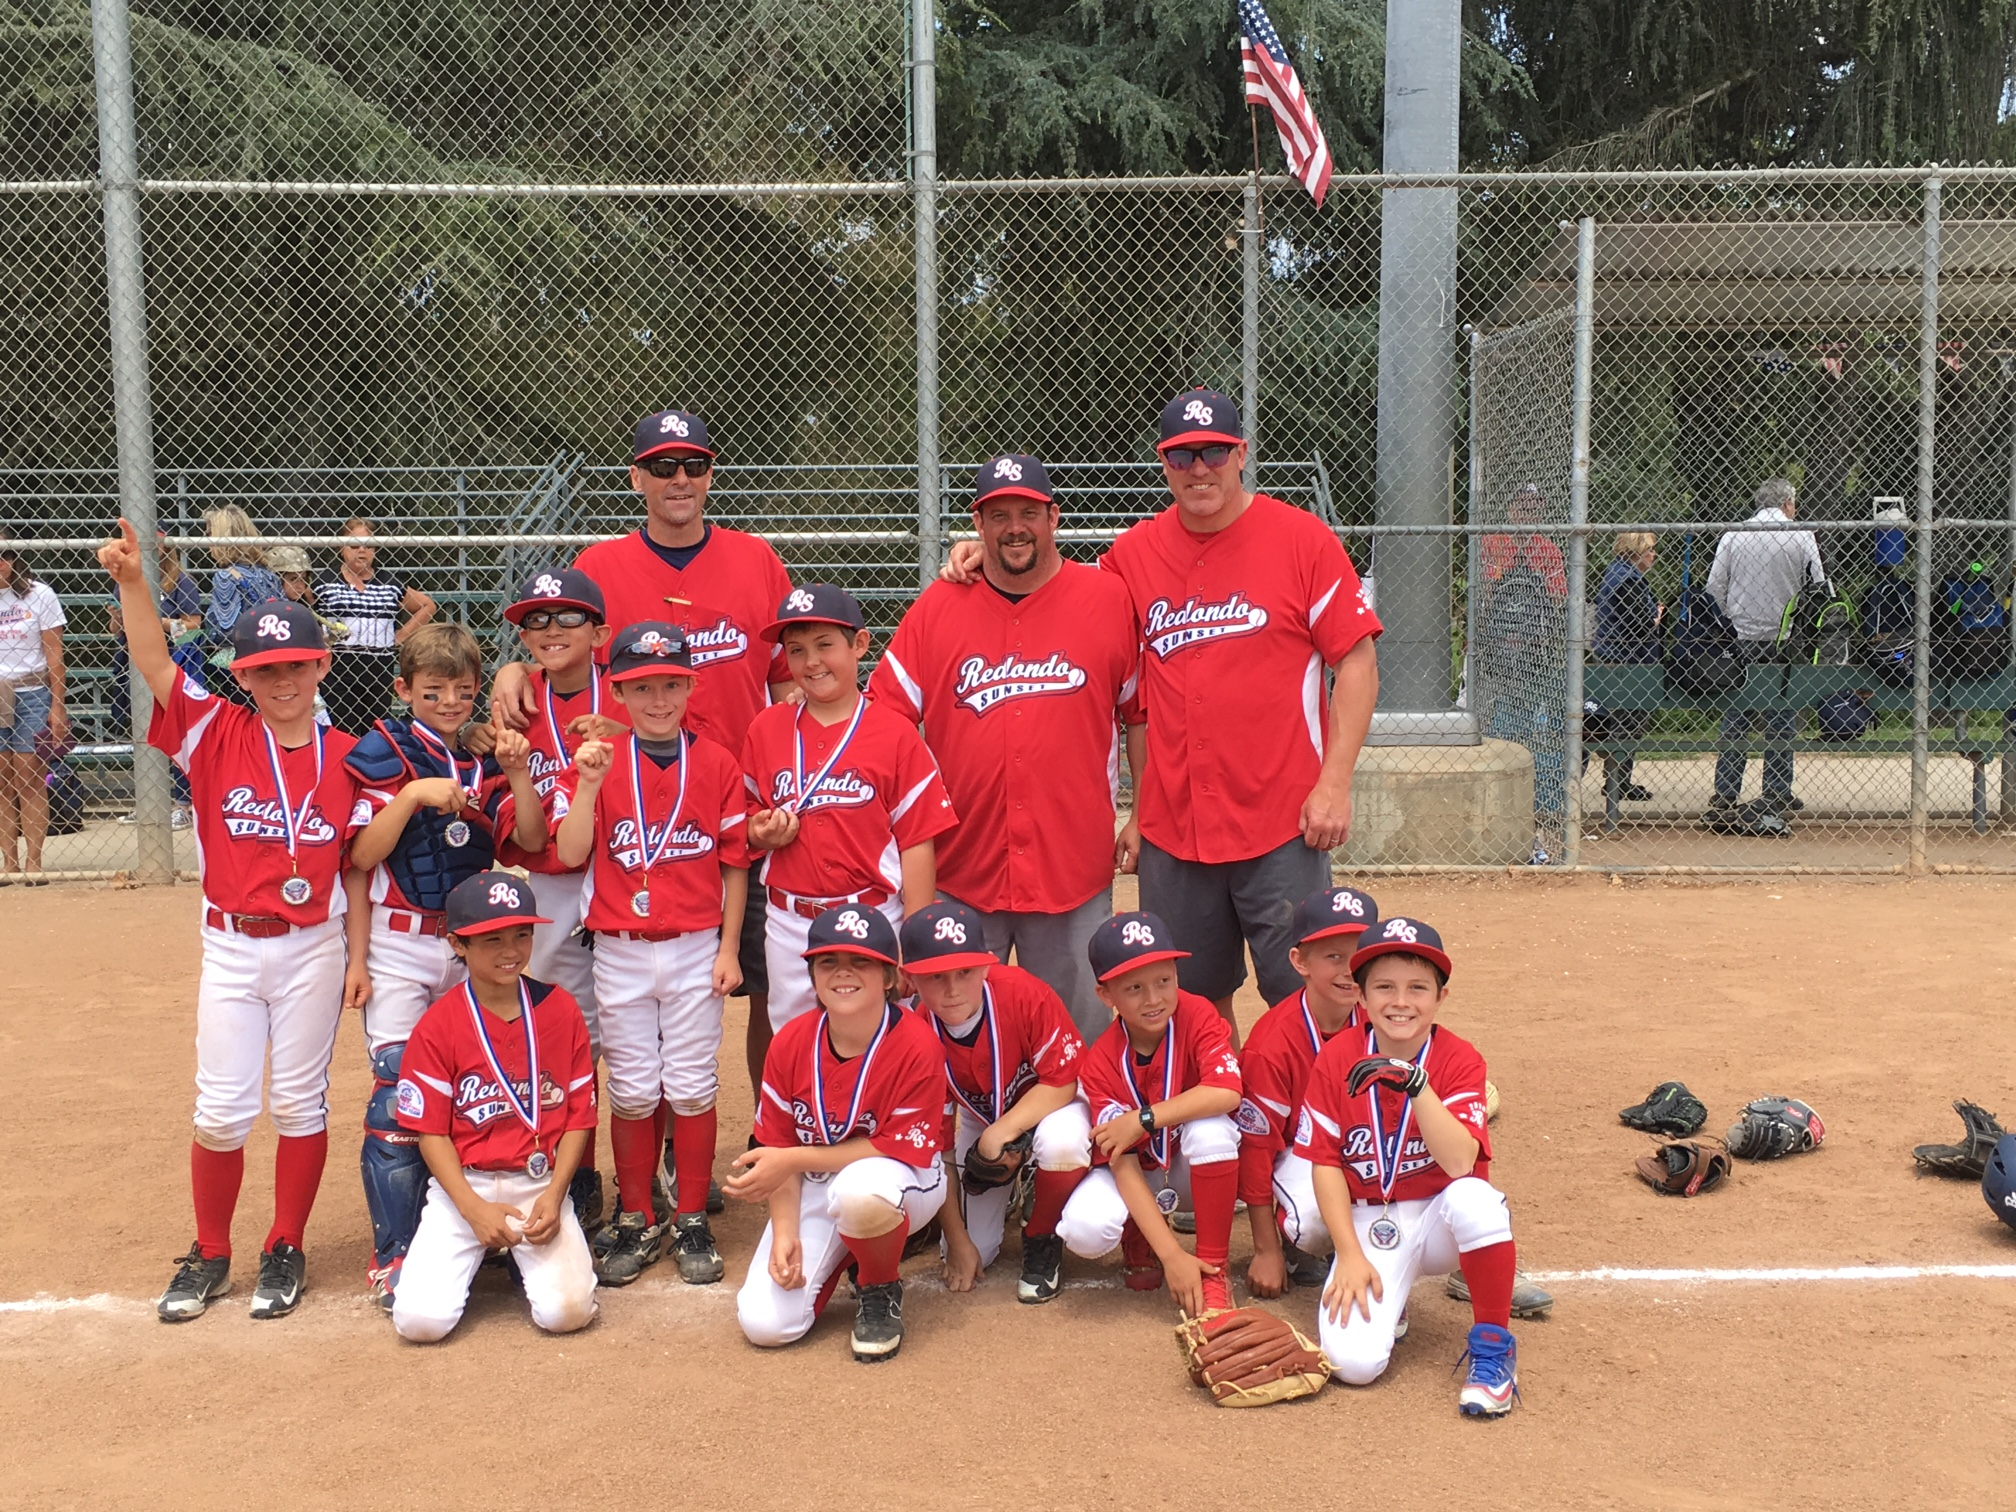 Cheviot Hills Memorial Day Tournament